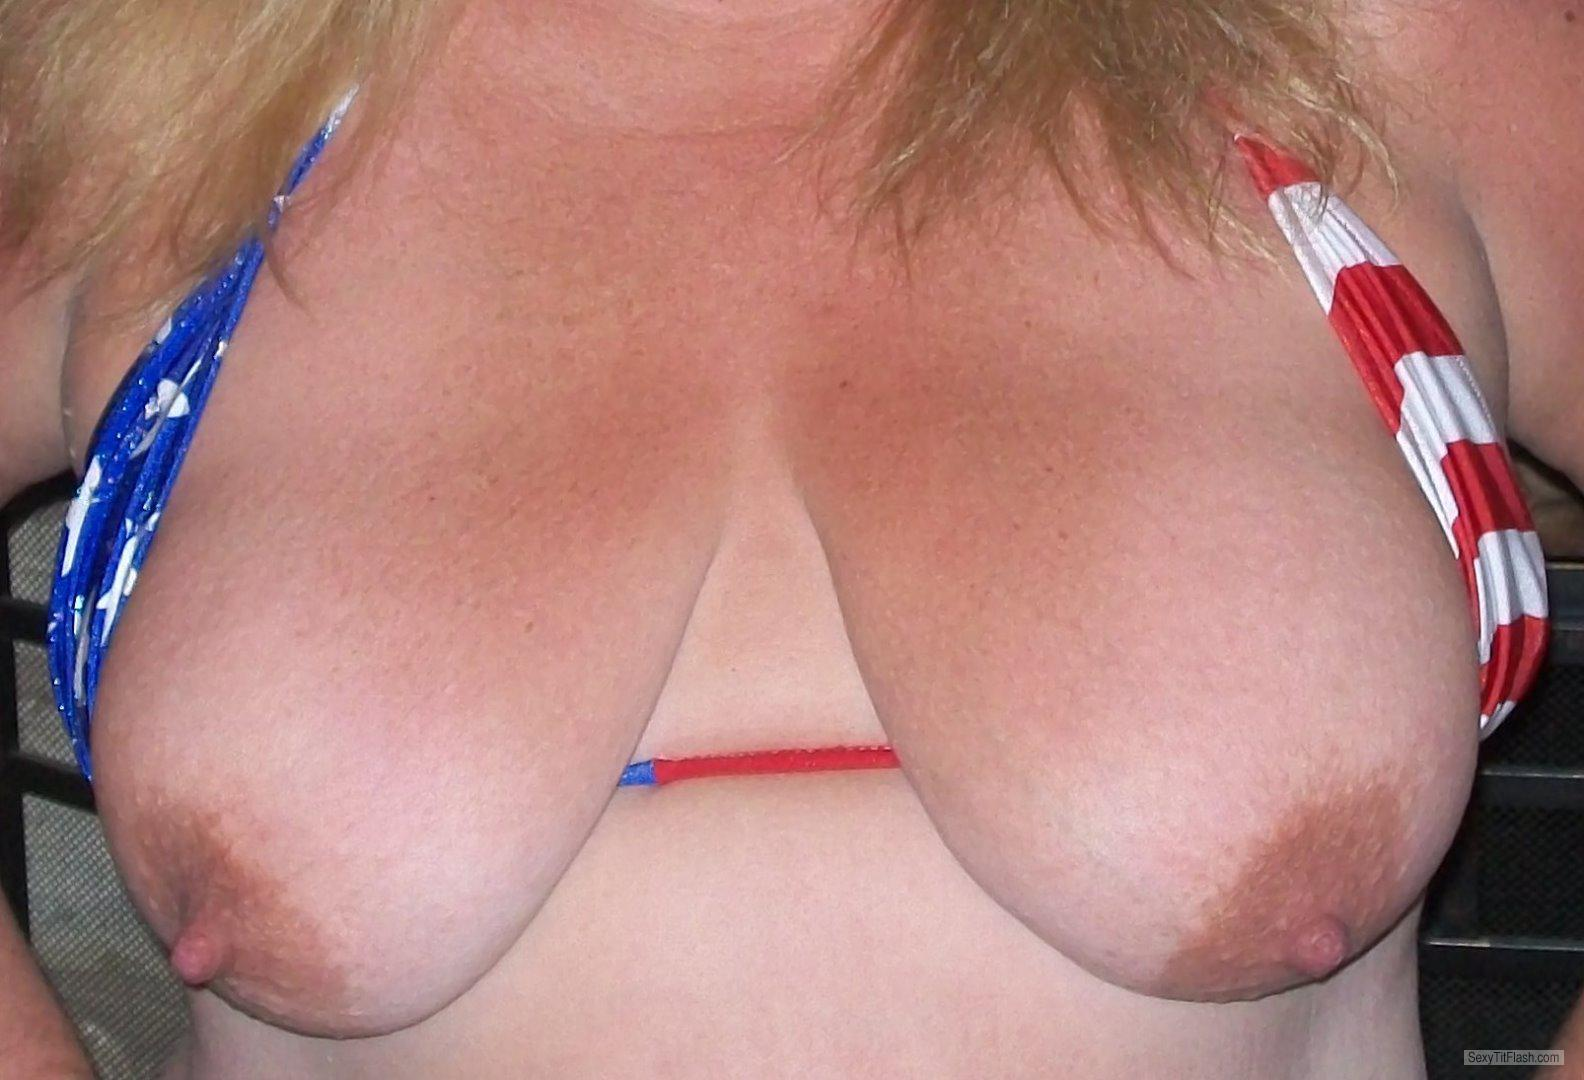 Tit Flash: My Medium Tits - KTX from United States